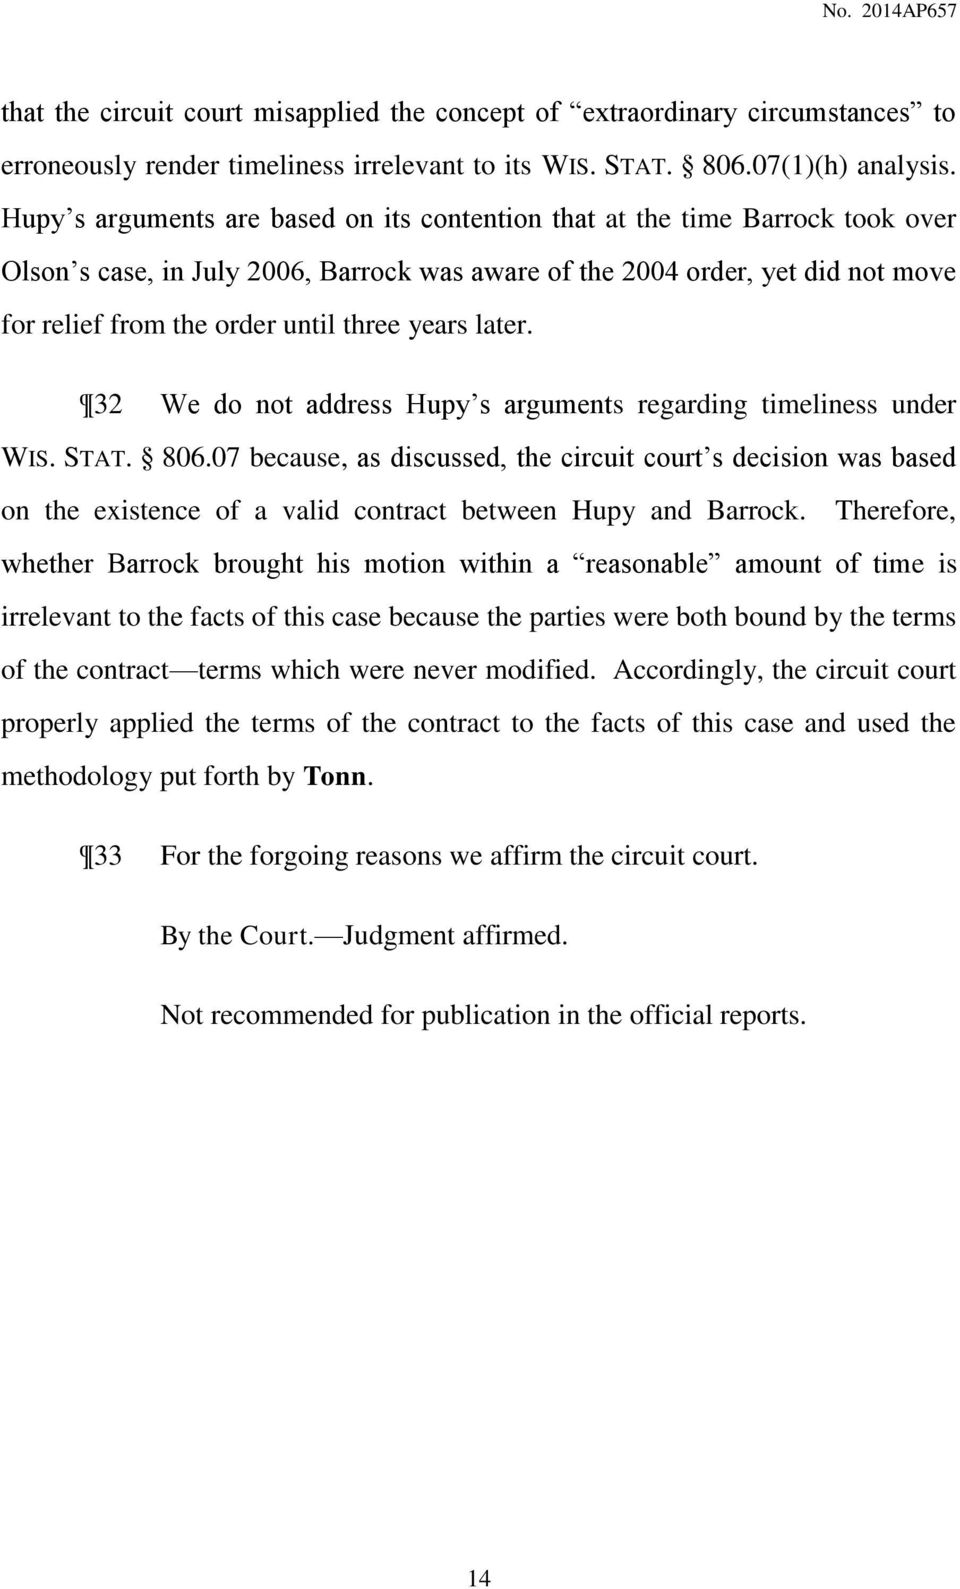 years later. 32 We do not address Hupy s arguments regarding timeliness under WIS. STAT. 806.